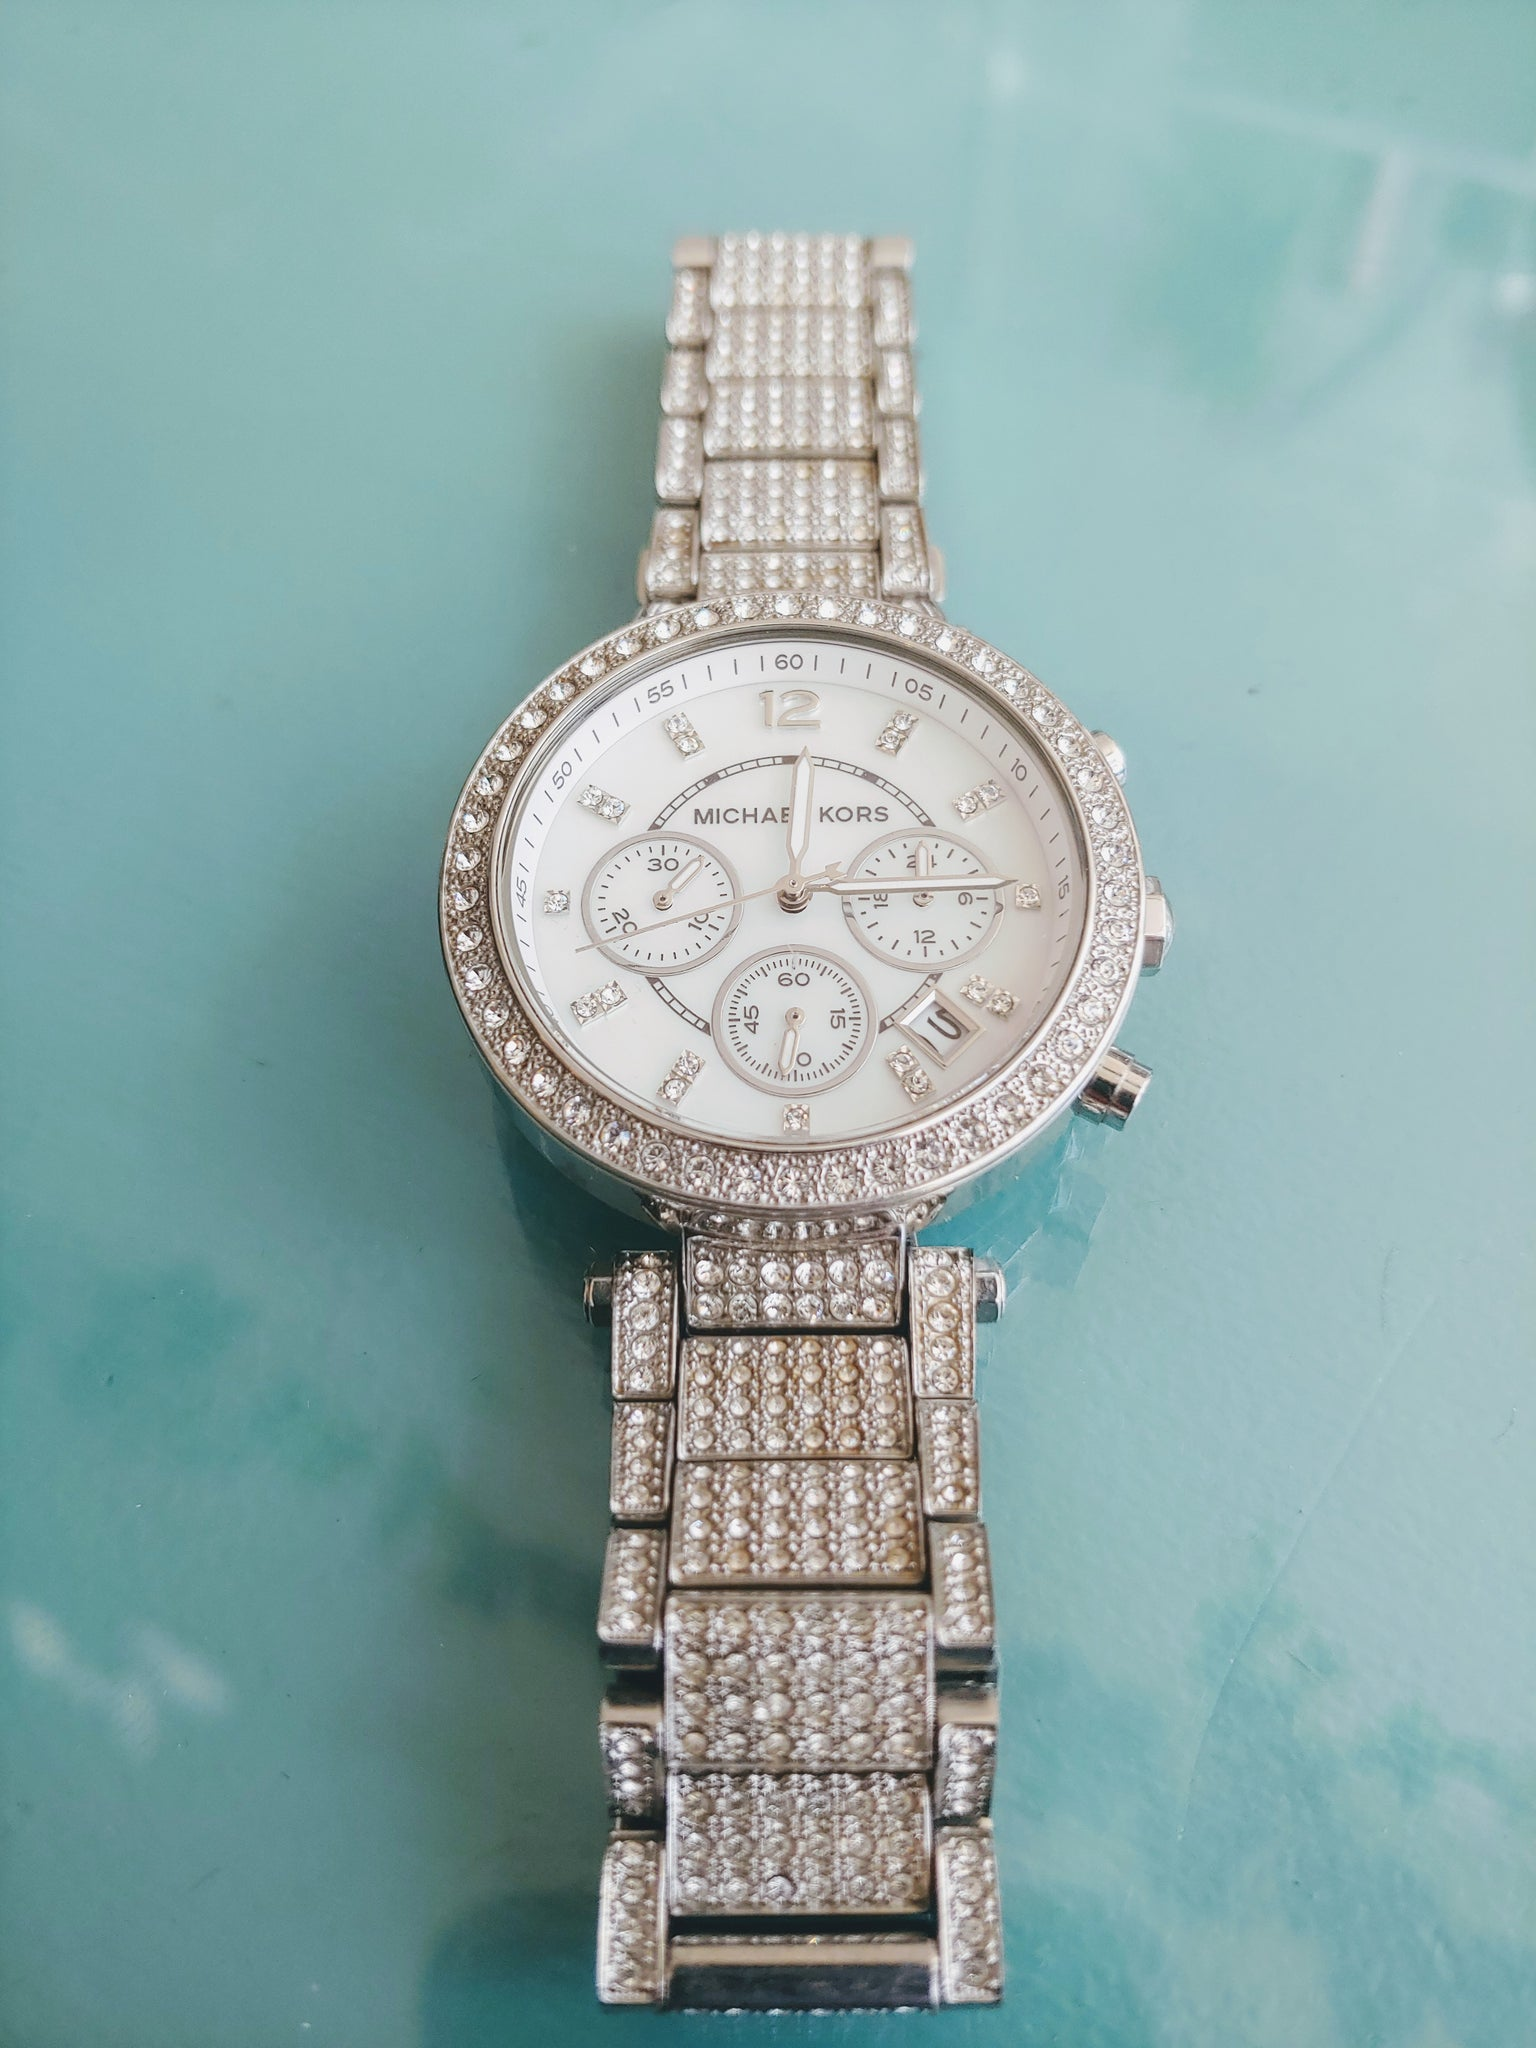 Silver & Pave Crystal Michael Kors Watch